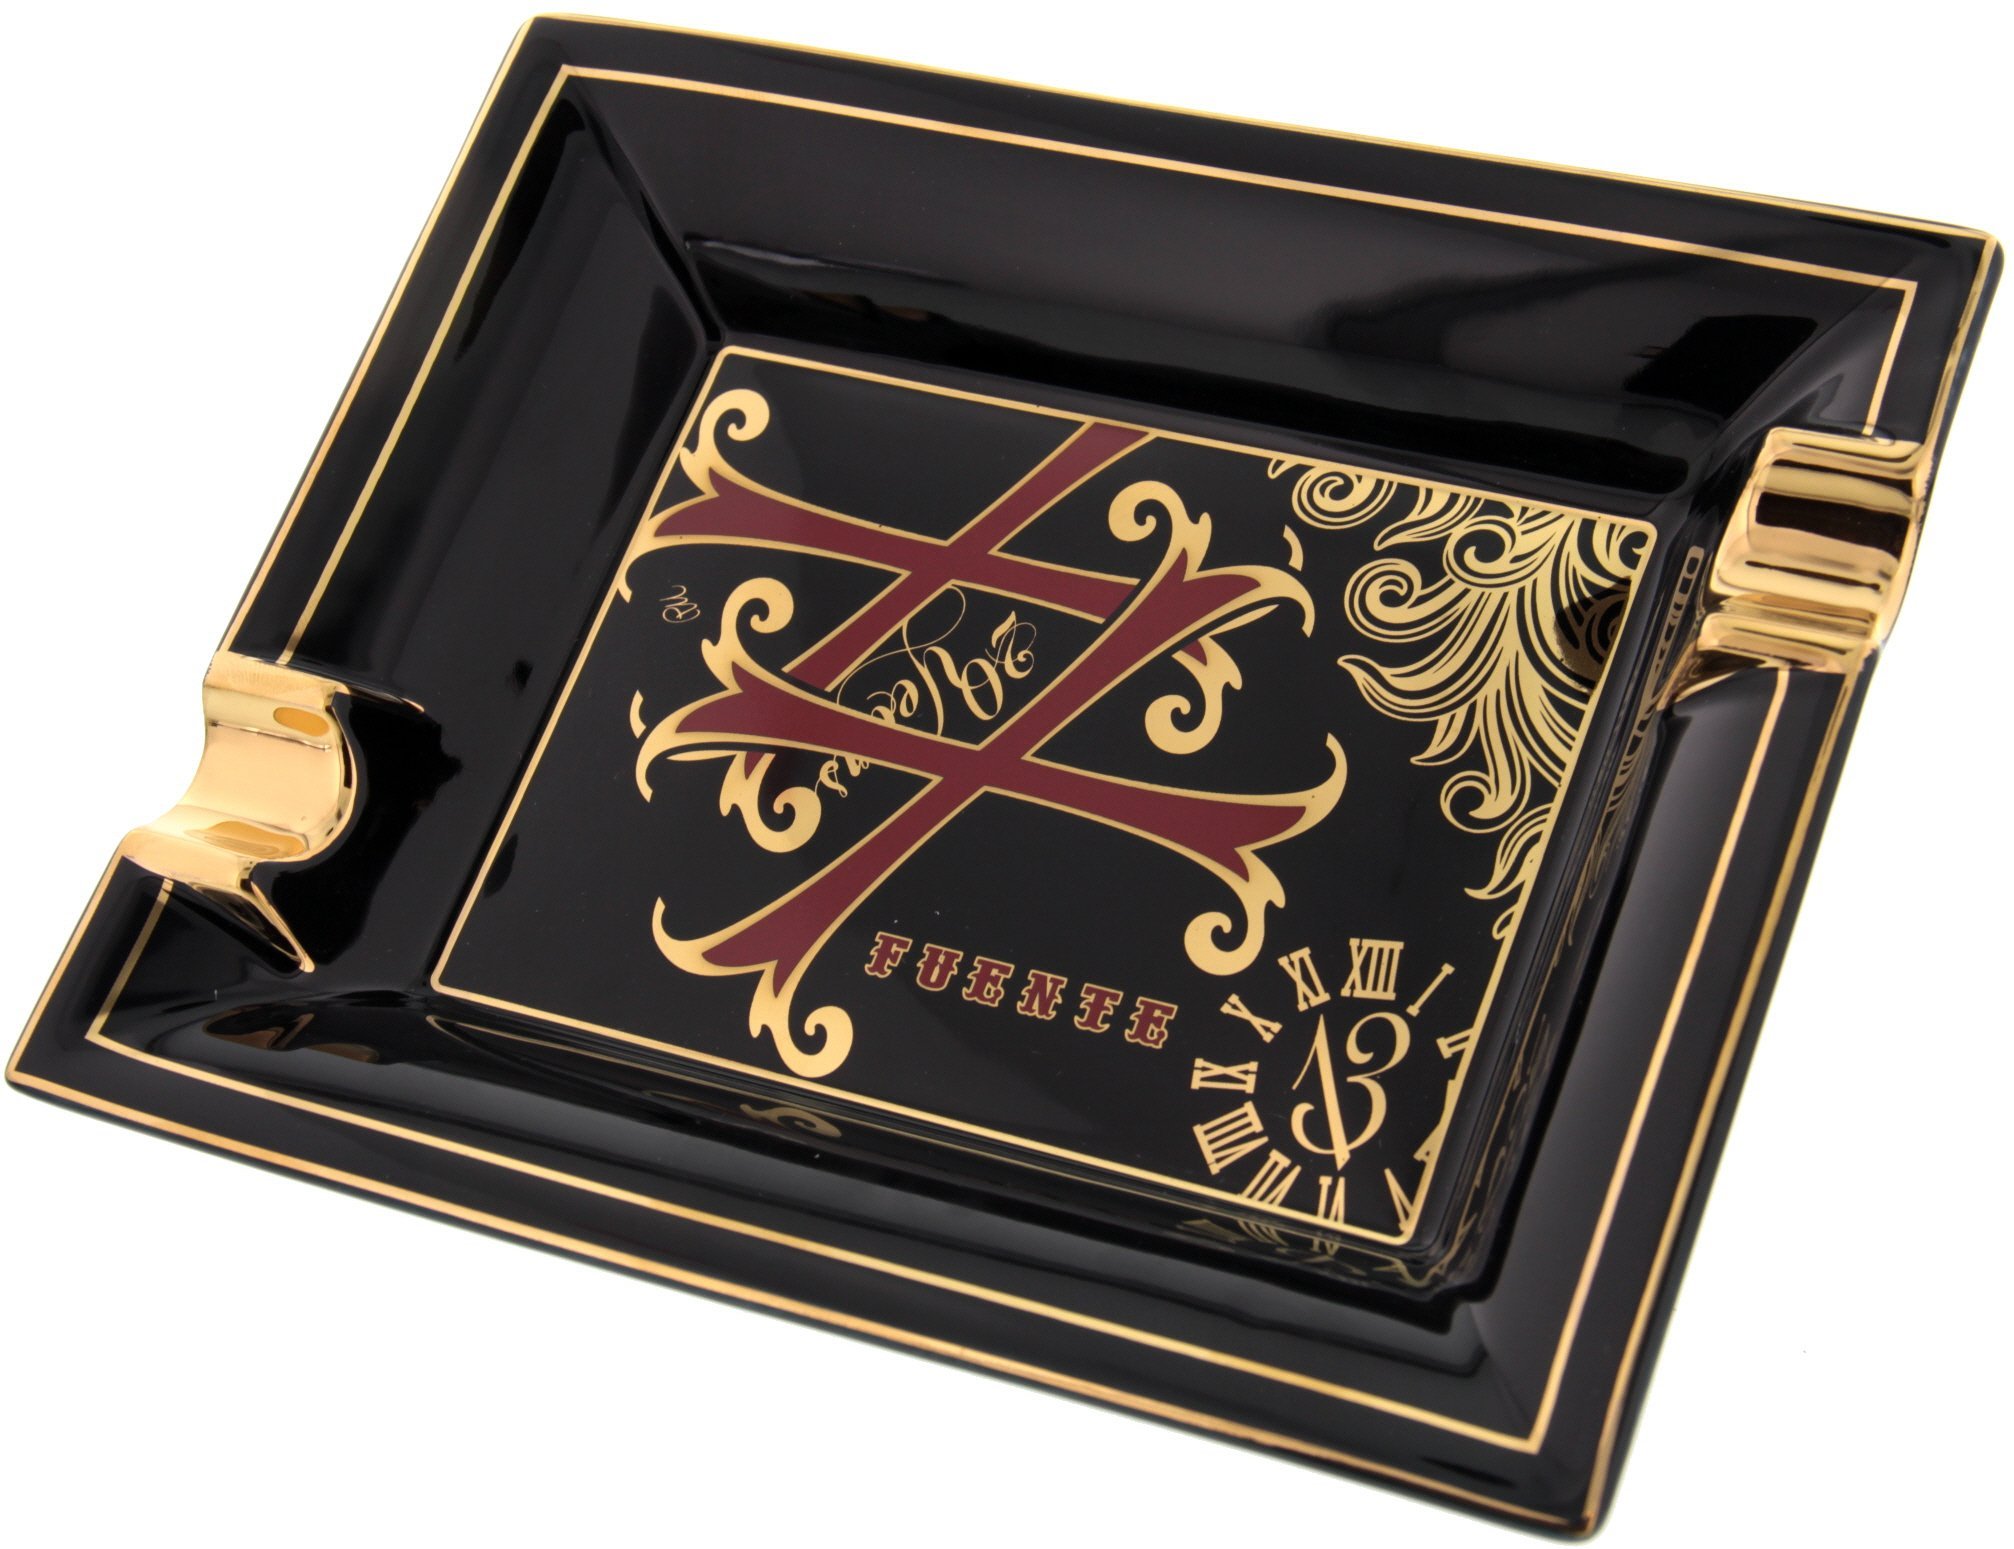 Dupont Aschenbecher Opus X designed by James Michael Black Porcelain de Limoges